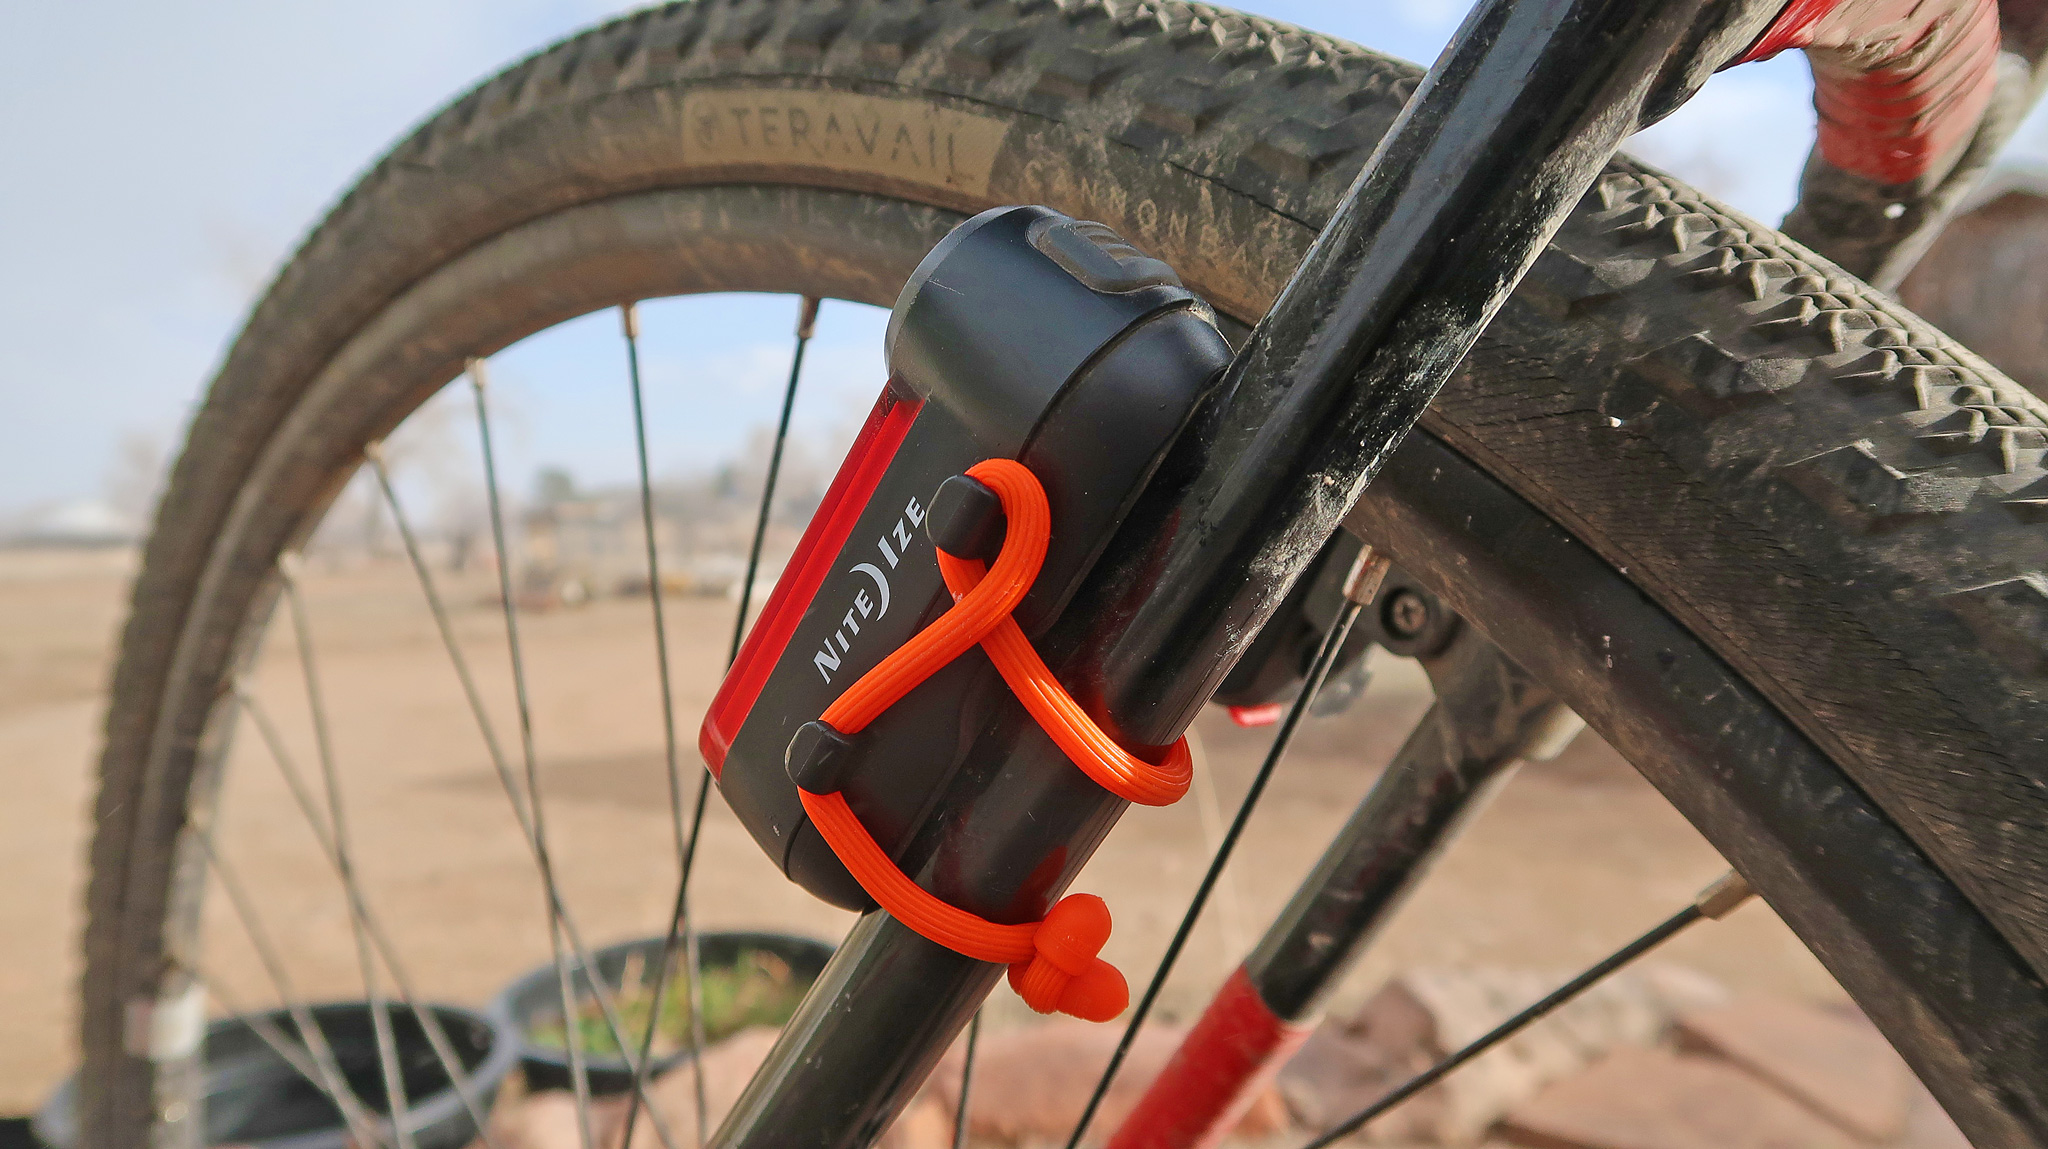 Red Radiant 125 with an alternative bombproof mounting using a Nite Ize Gear Tie